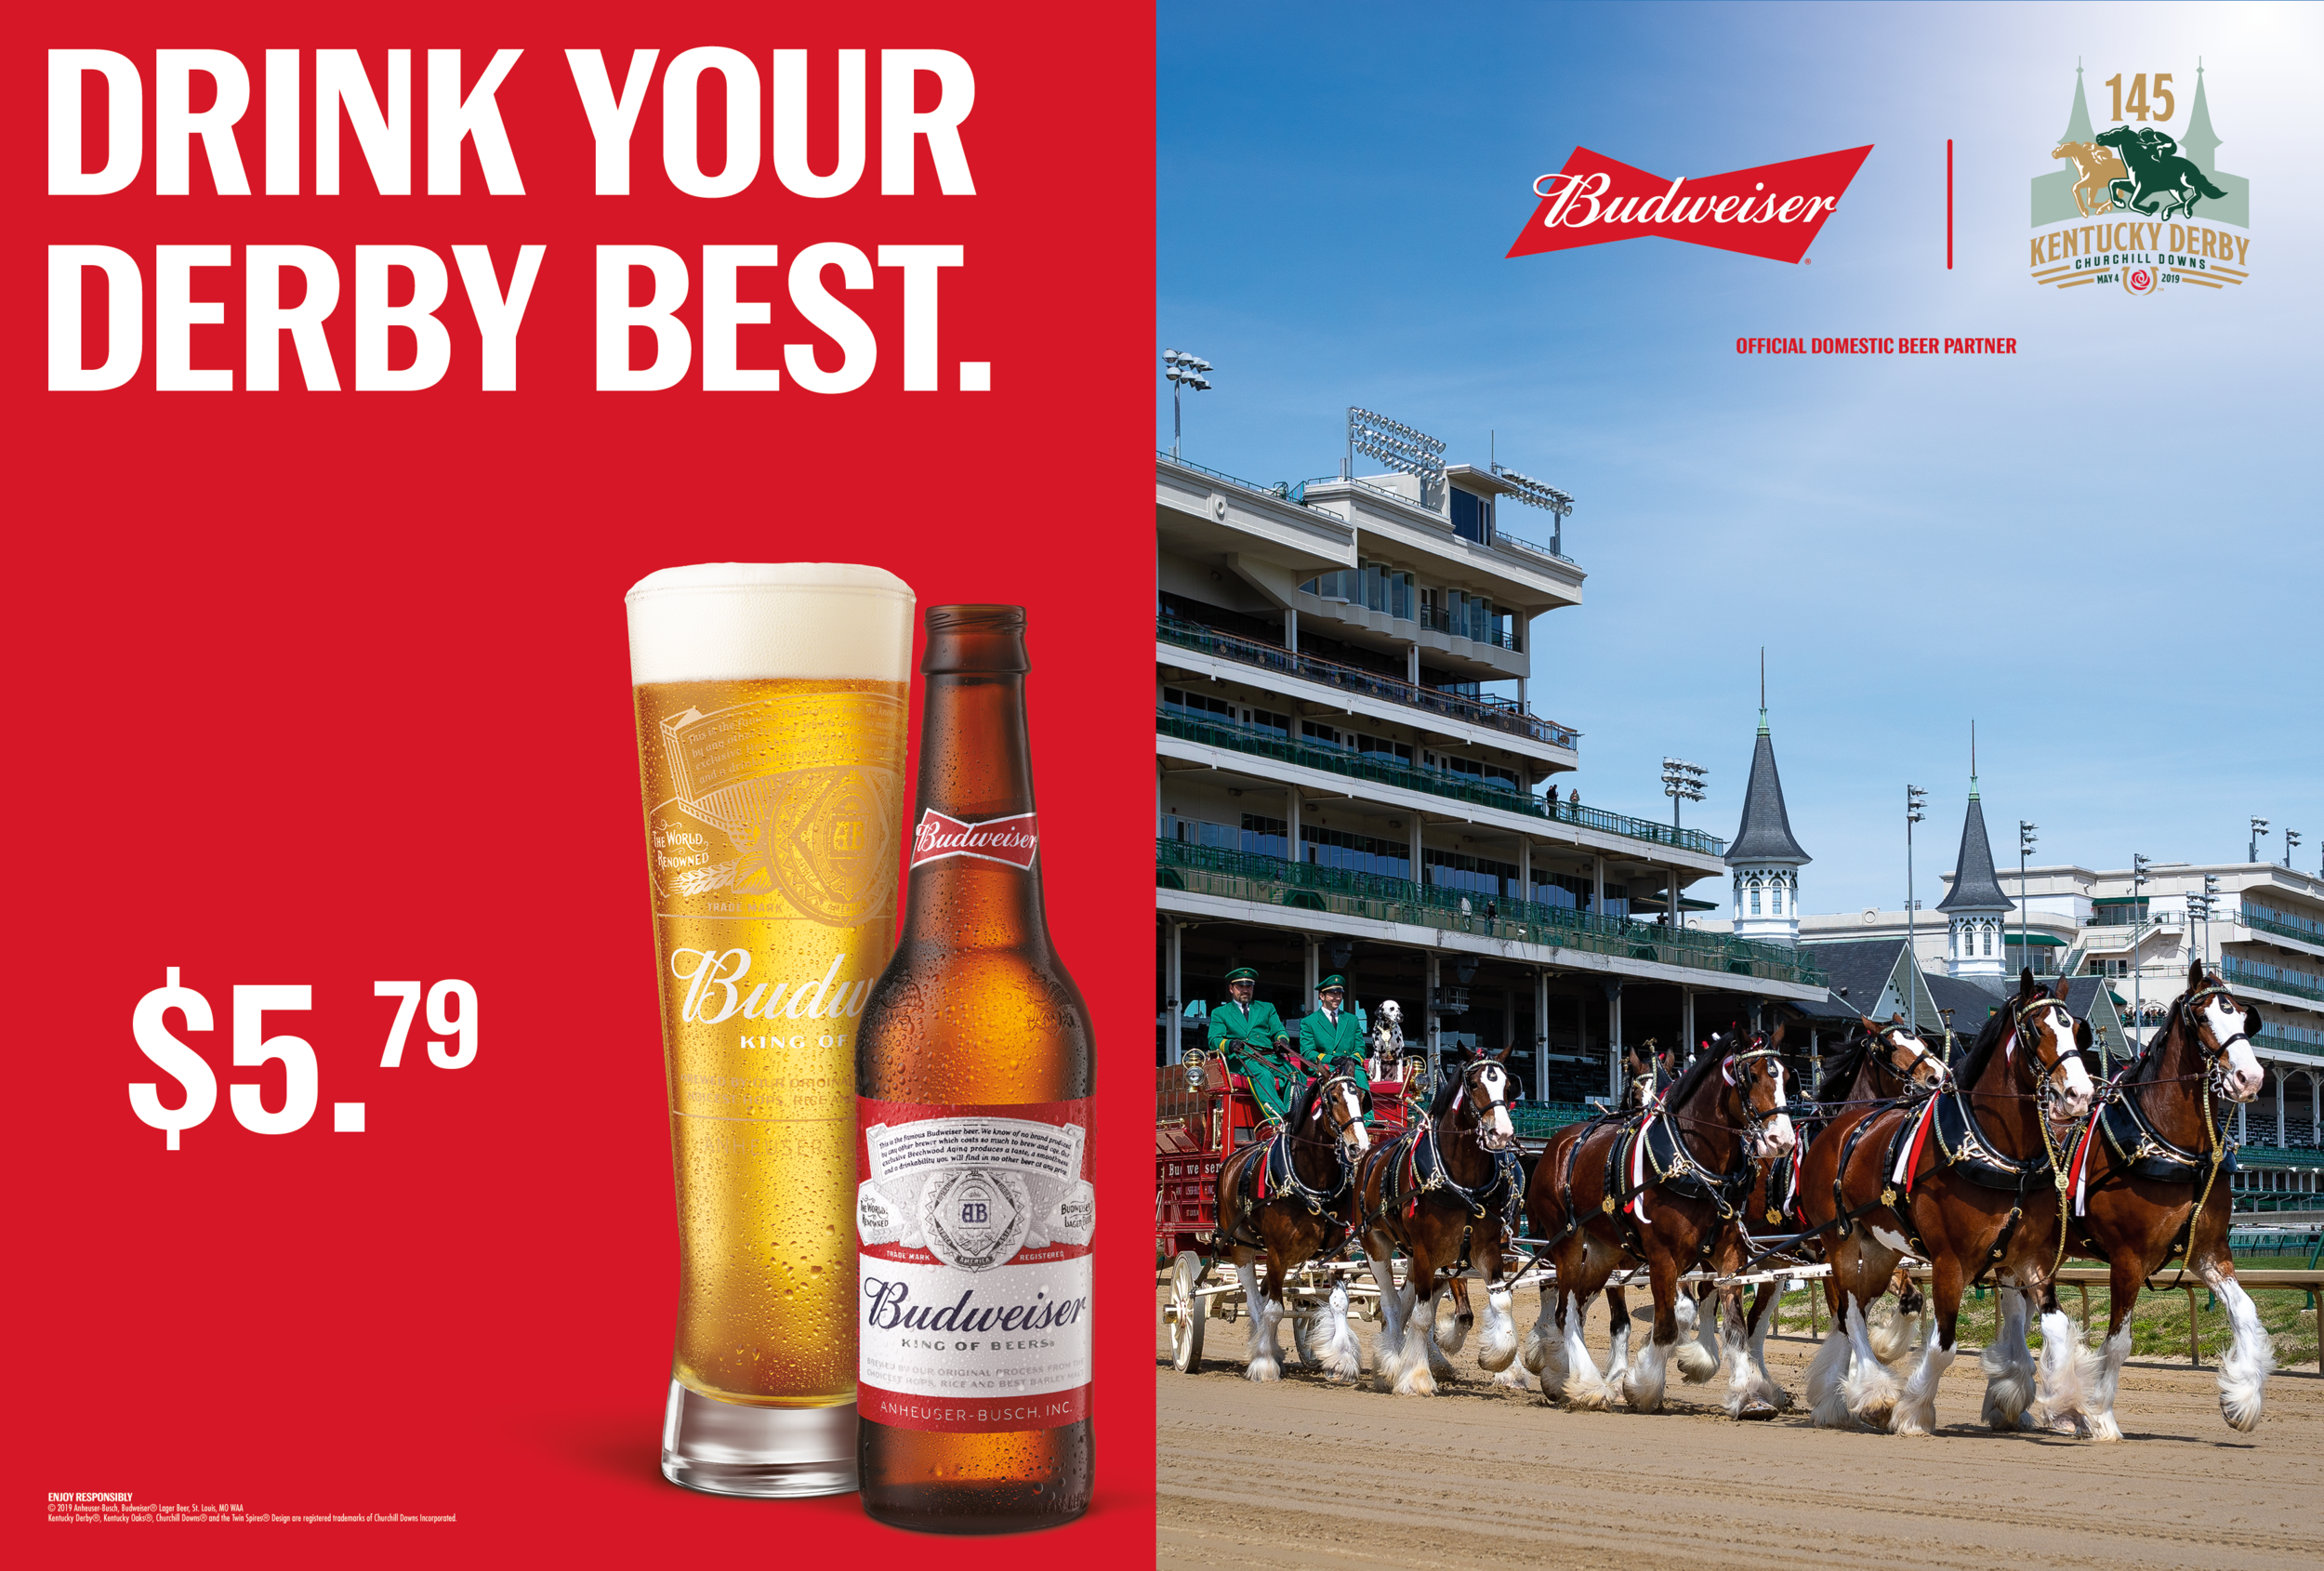 814293_Bud_KentuckyDerby_Drink_3x2_mr3a.png